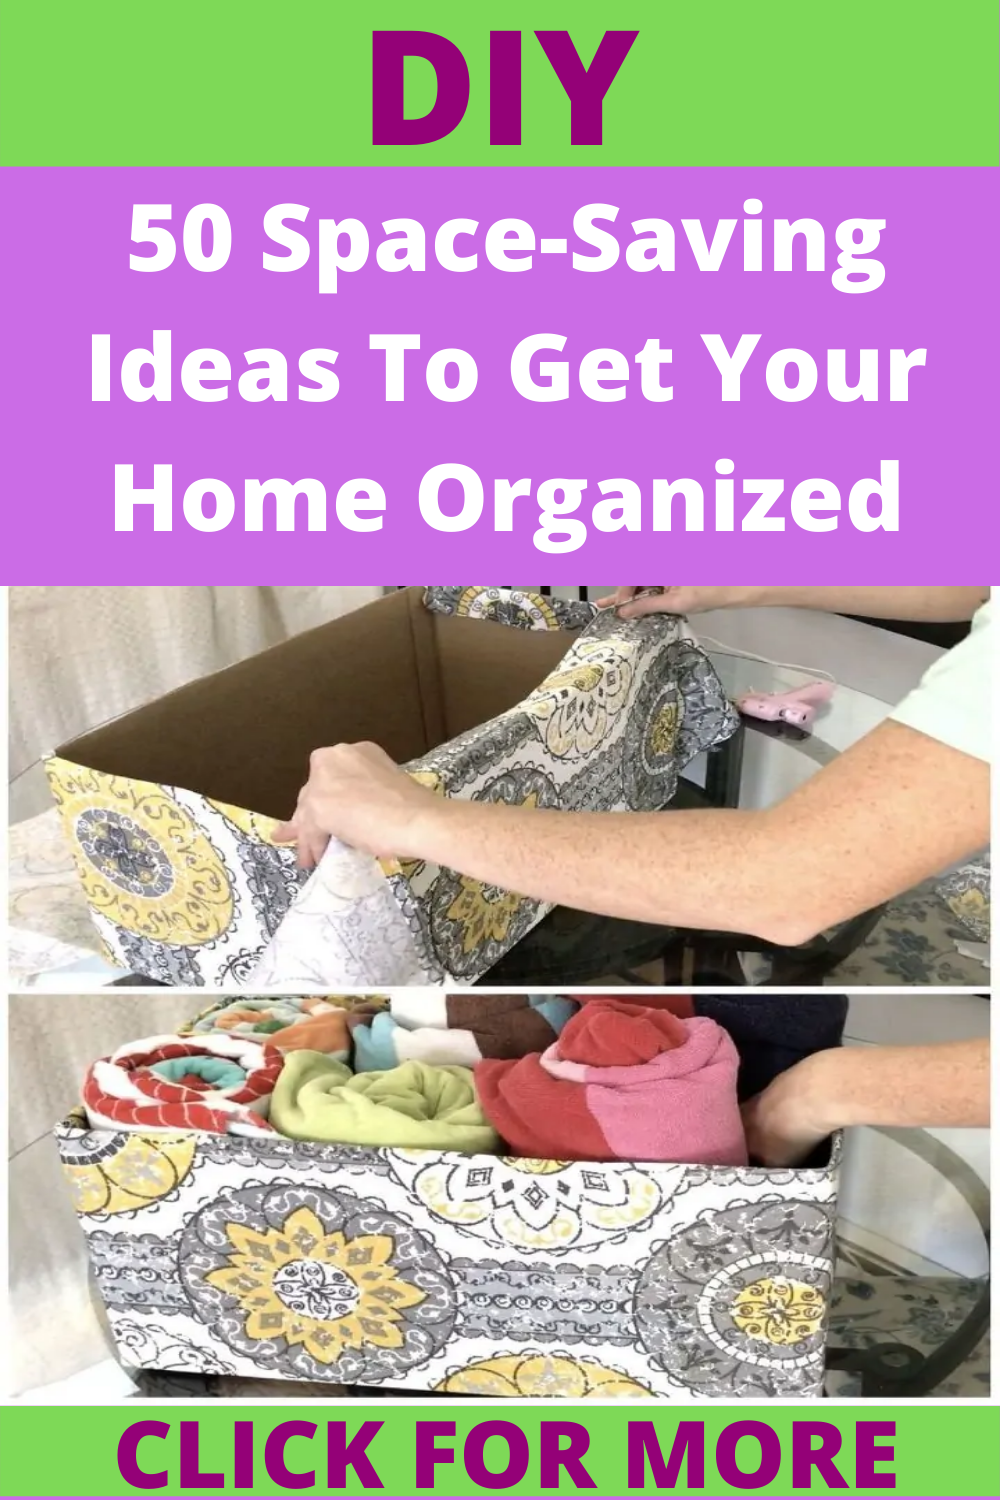 50 Space-Saving Ideas To Get Your Home Organized